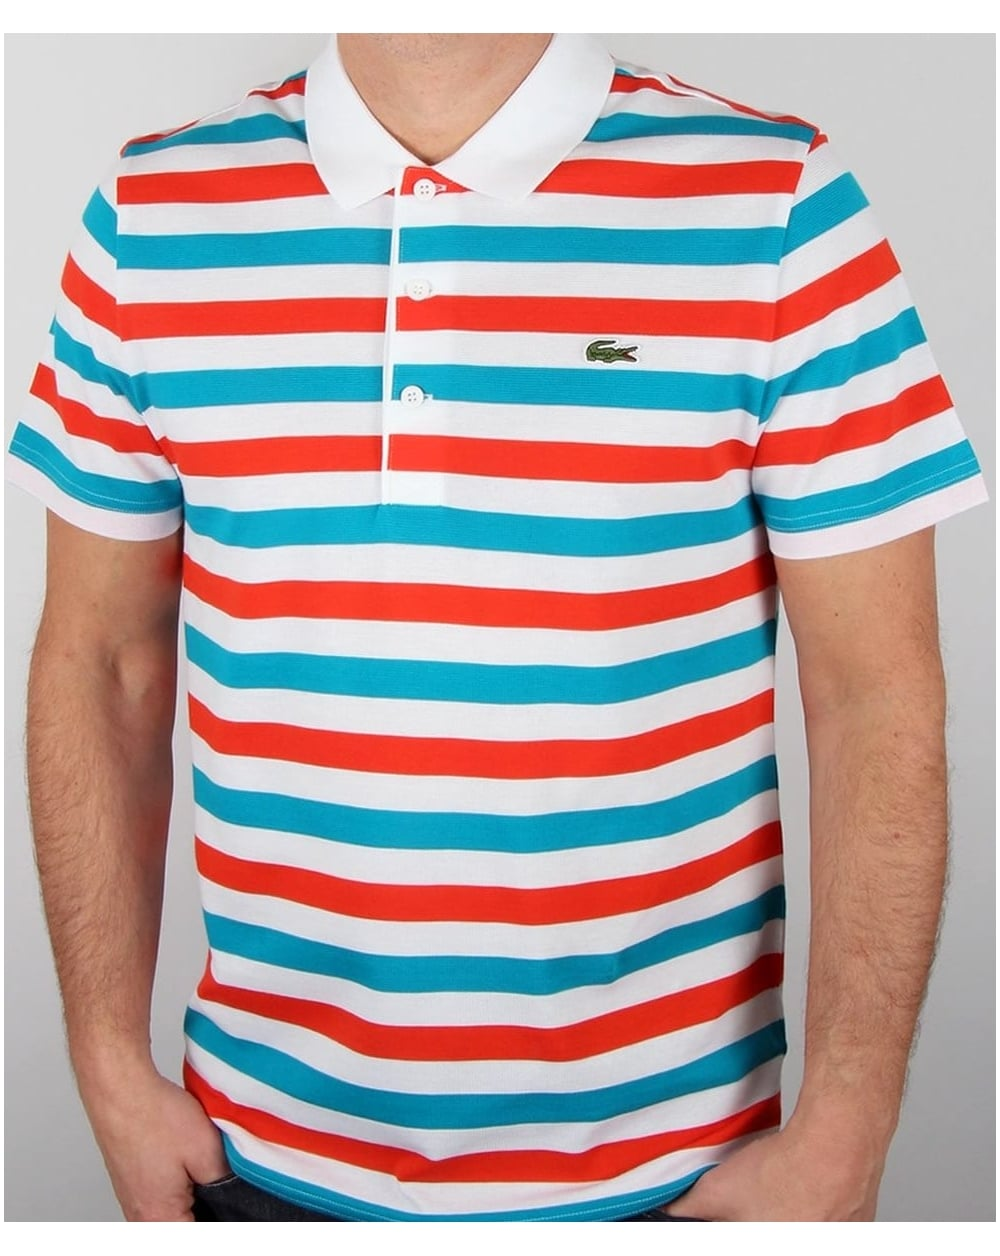 34546e234c255 Lacoste Lacoste Fine Stripe Polo Shirt White red blue